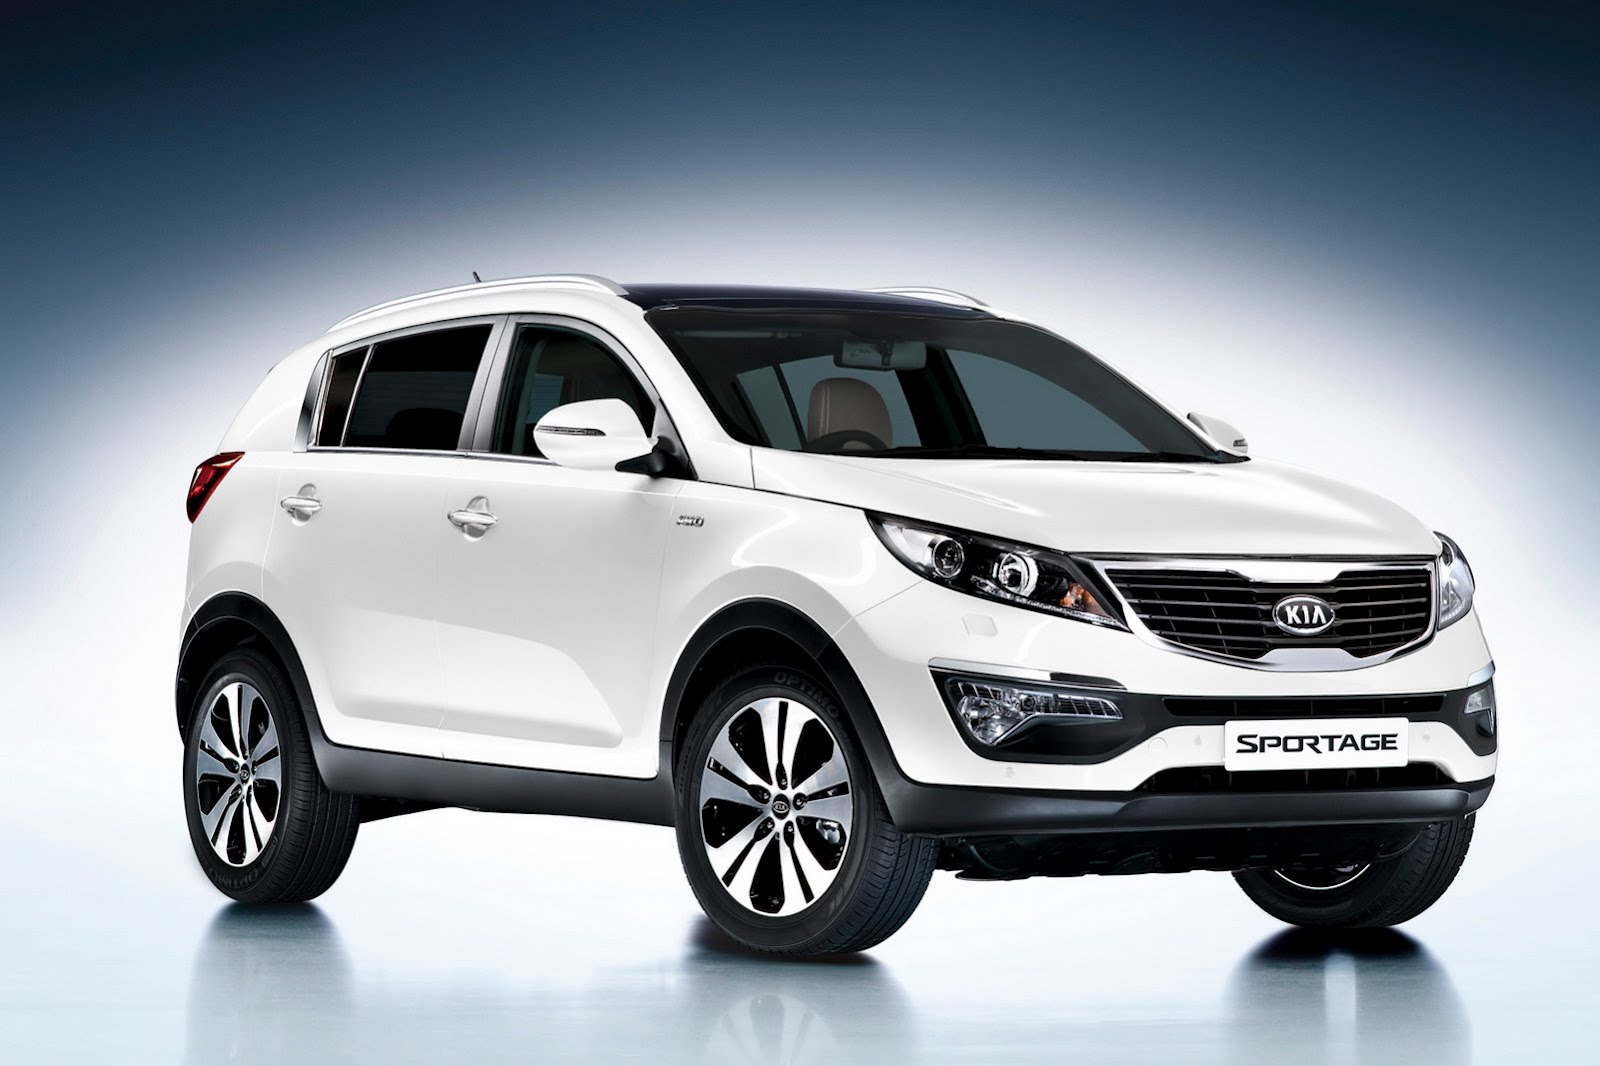 Kia Sportage KX-4 Wallpapers HD